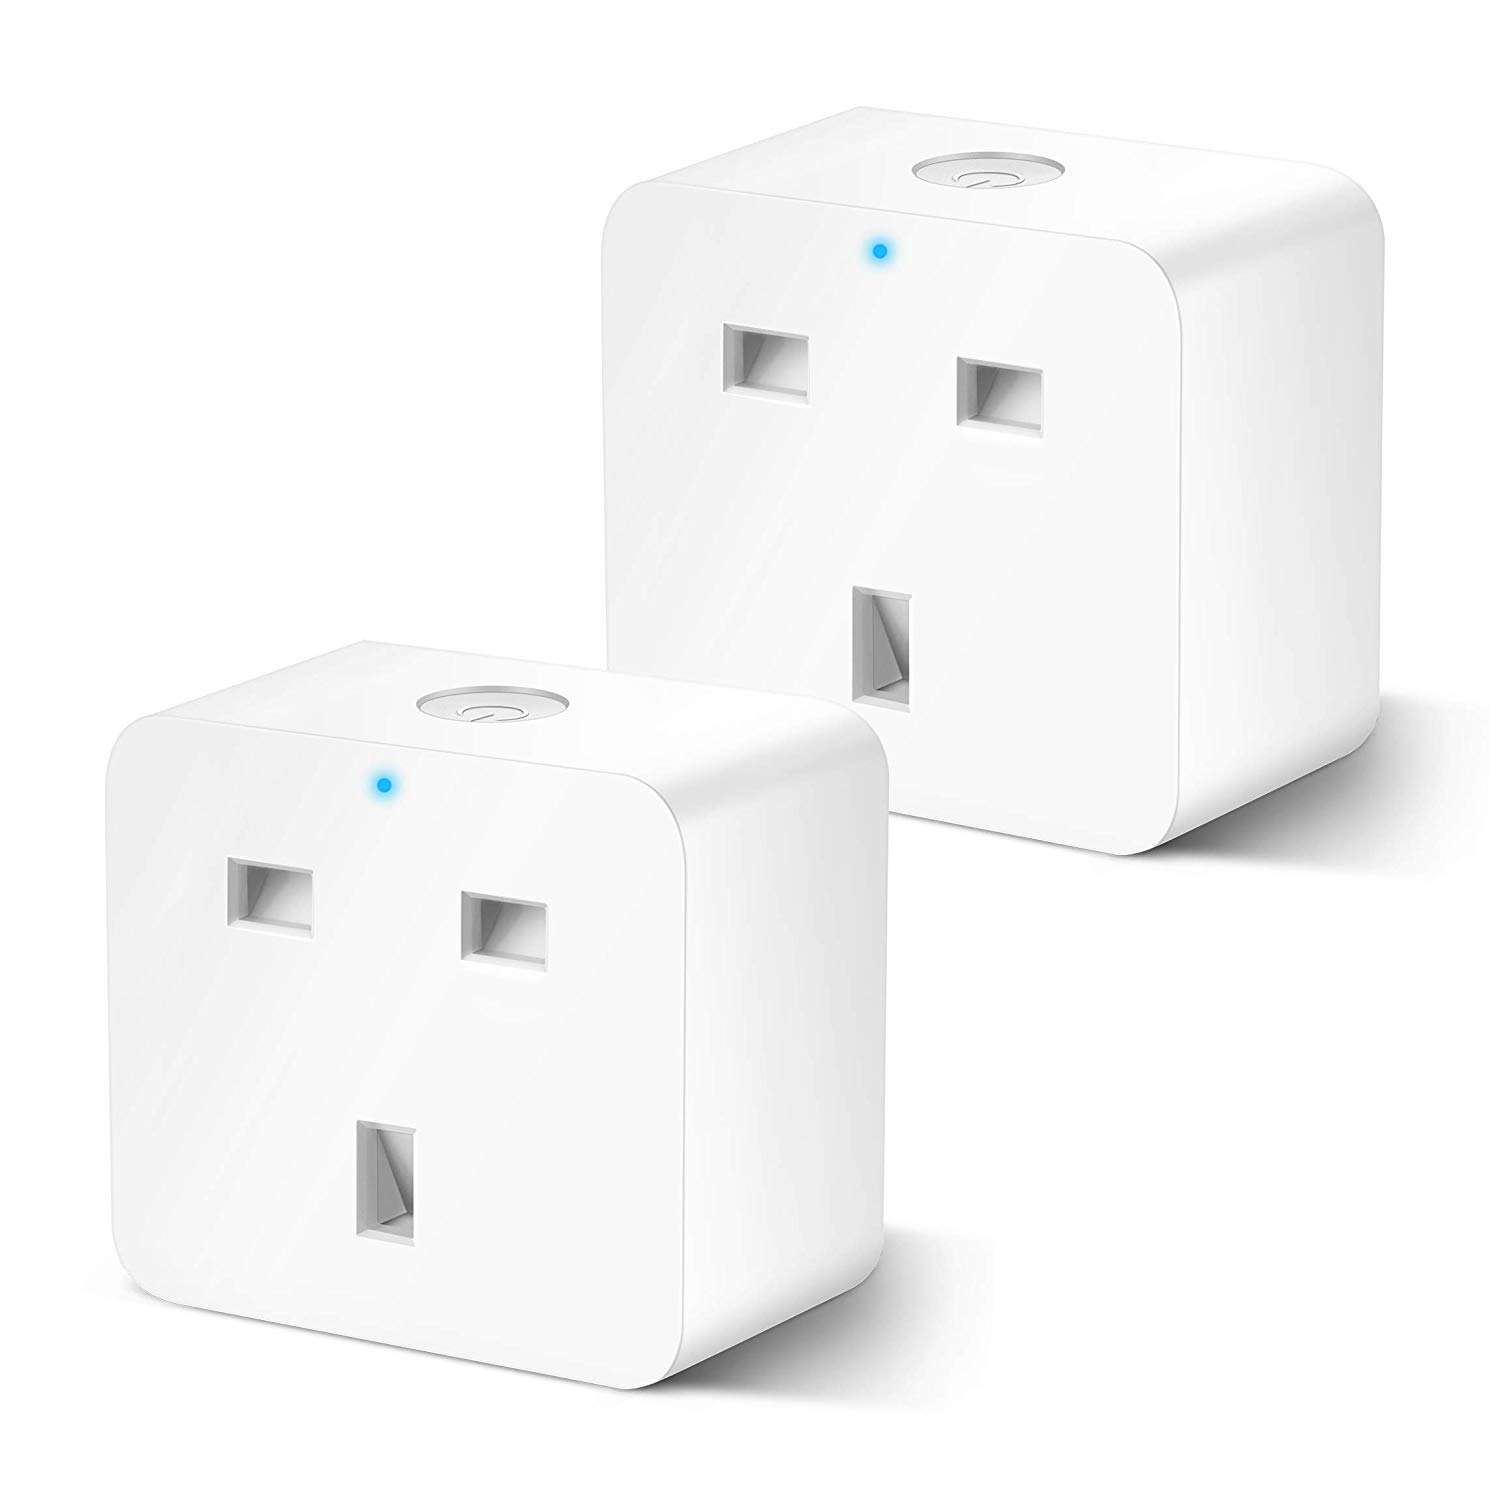 Terbaru Hot Jual Teckin 13A UK Smart Plug Overload Perlindungan Wifi Smart Plug Tuya Smart Socket